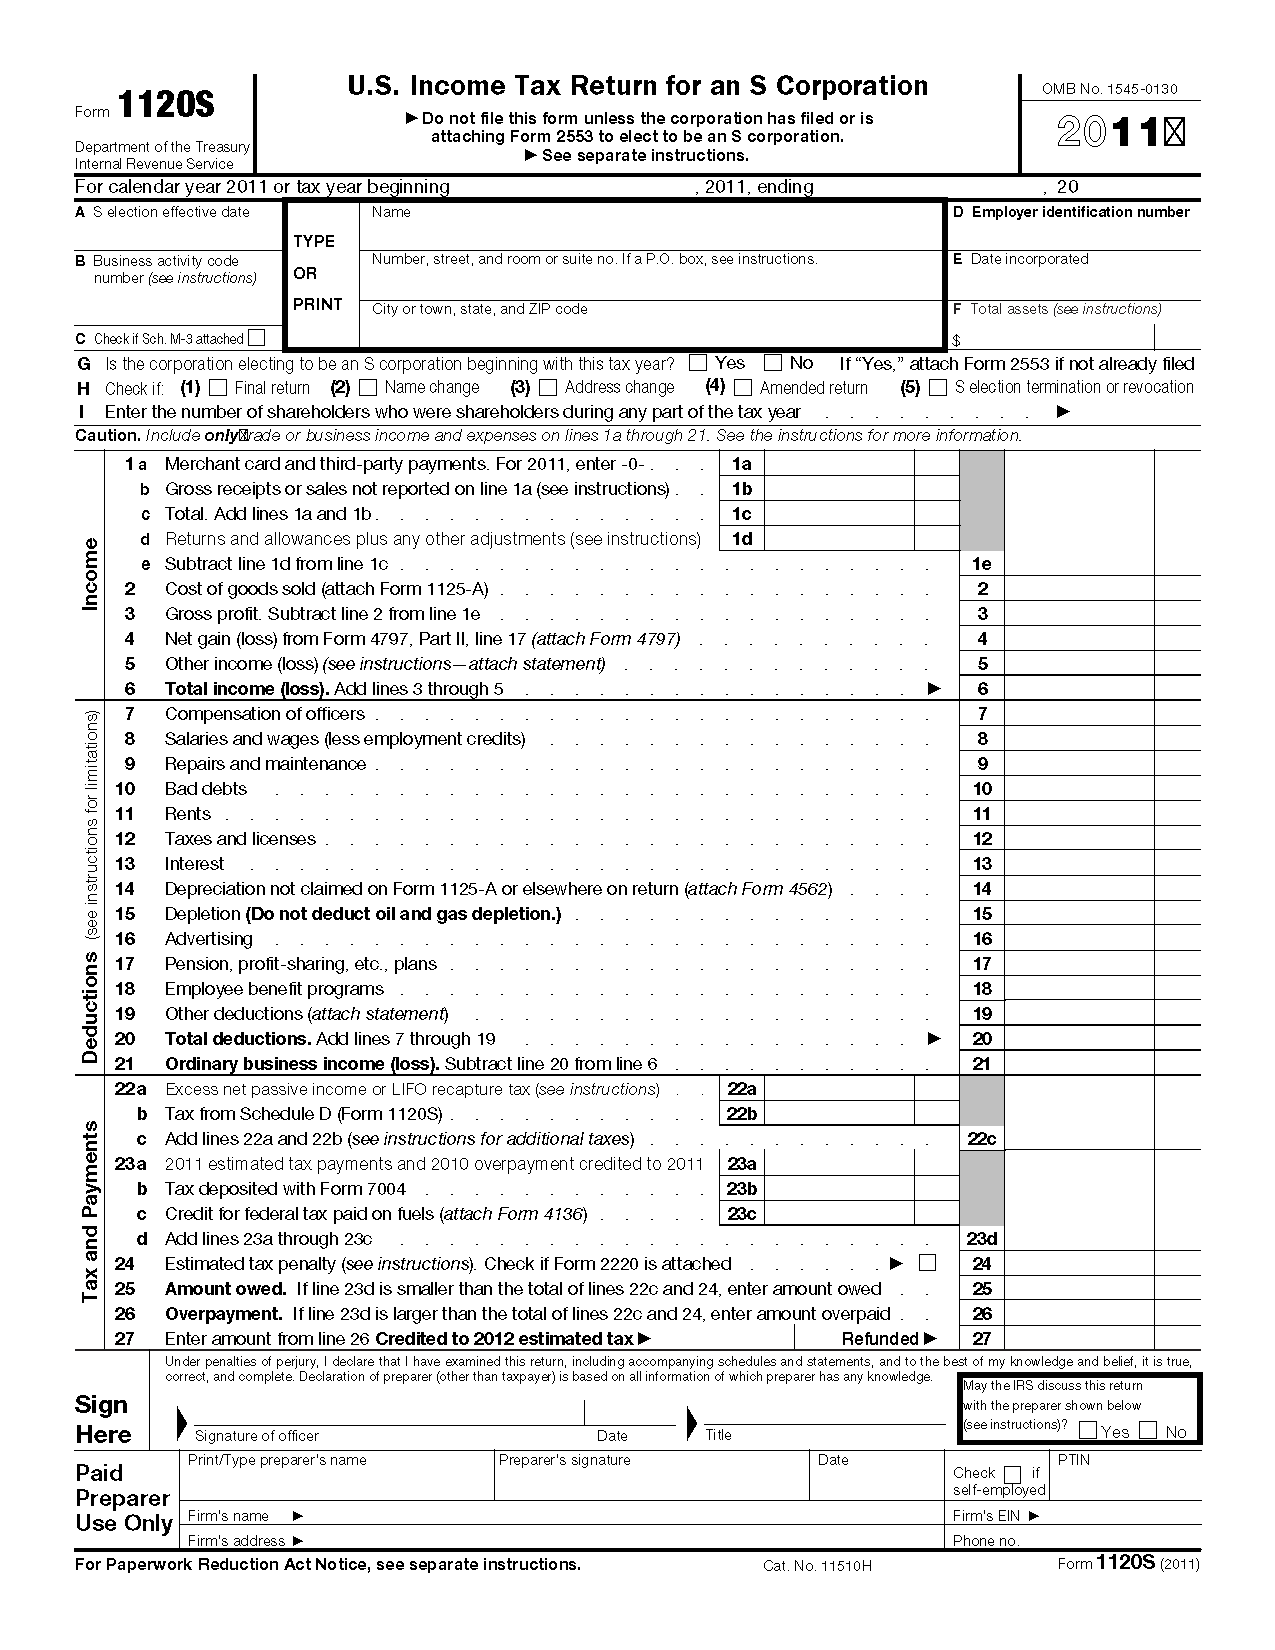 Form 1120 s us income tax return for an s corporation view all 2011 irs tax forms falaconquin